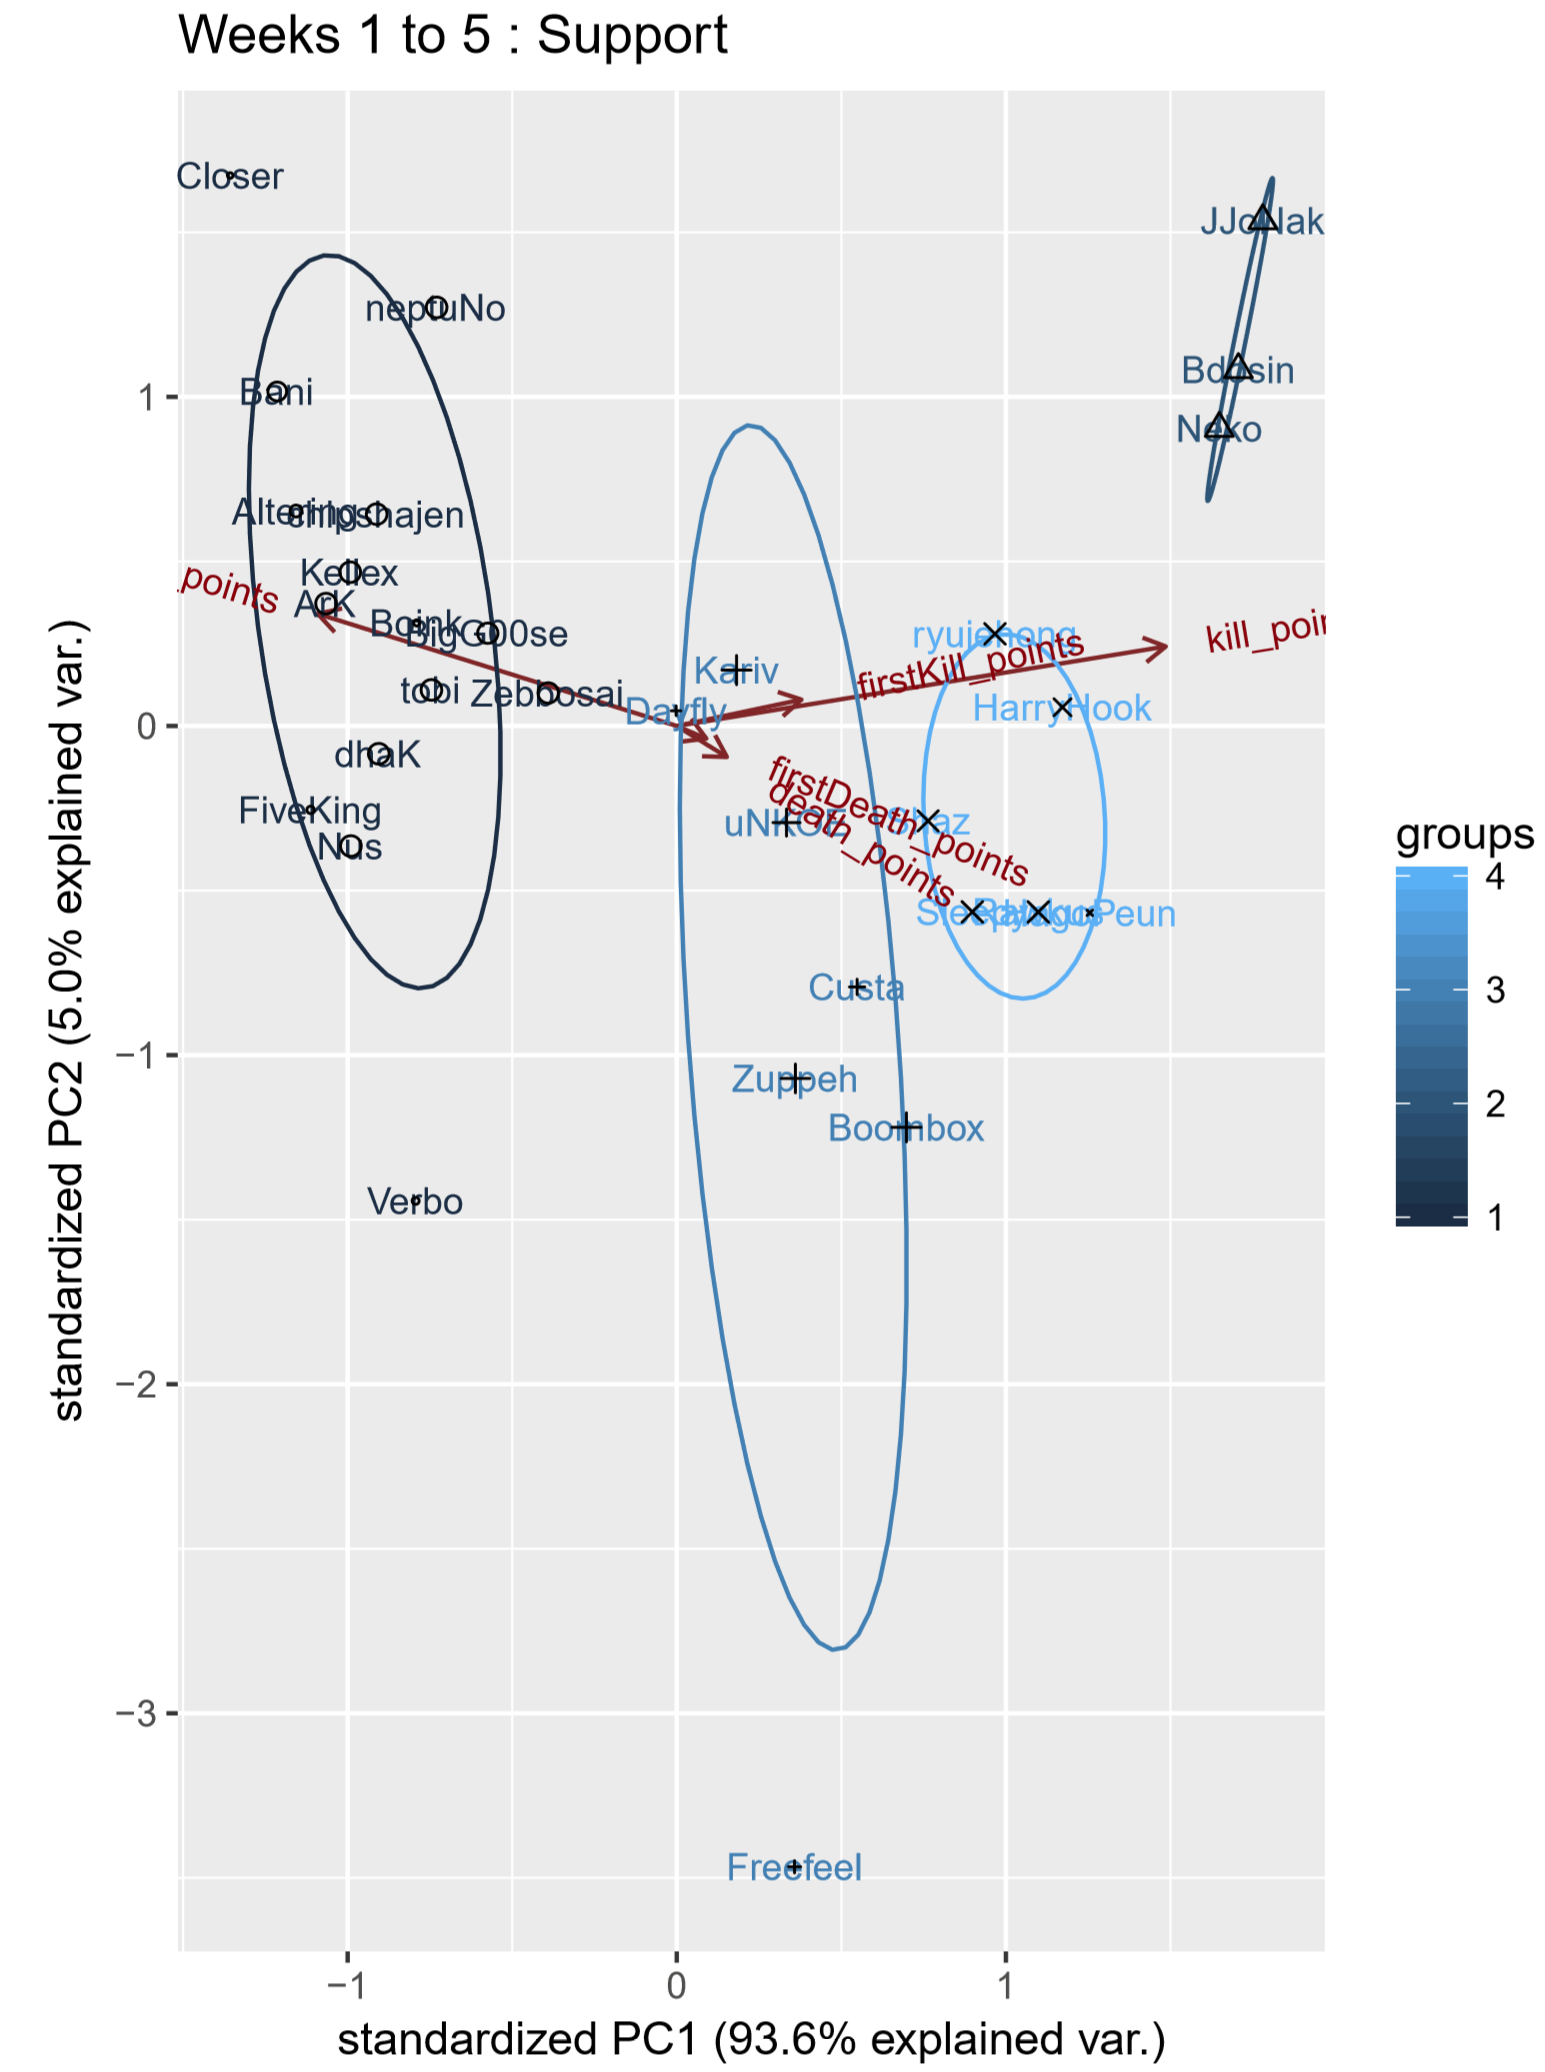 Figure 5. Weeks 1 to 5 support player principal component analysis biplot, labels by player name.